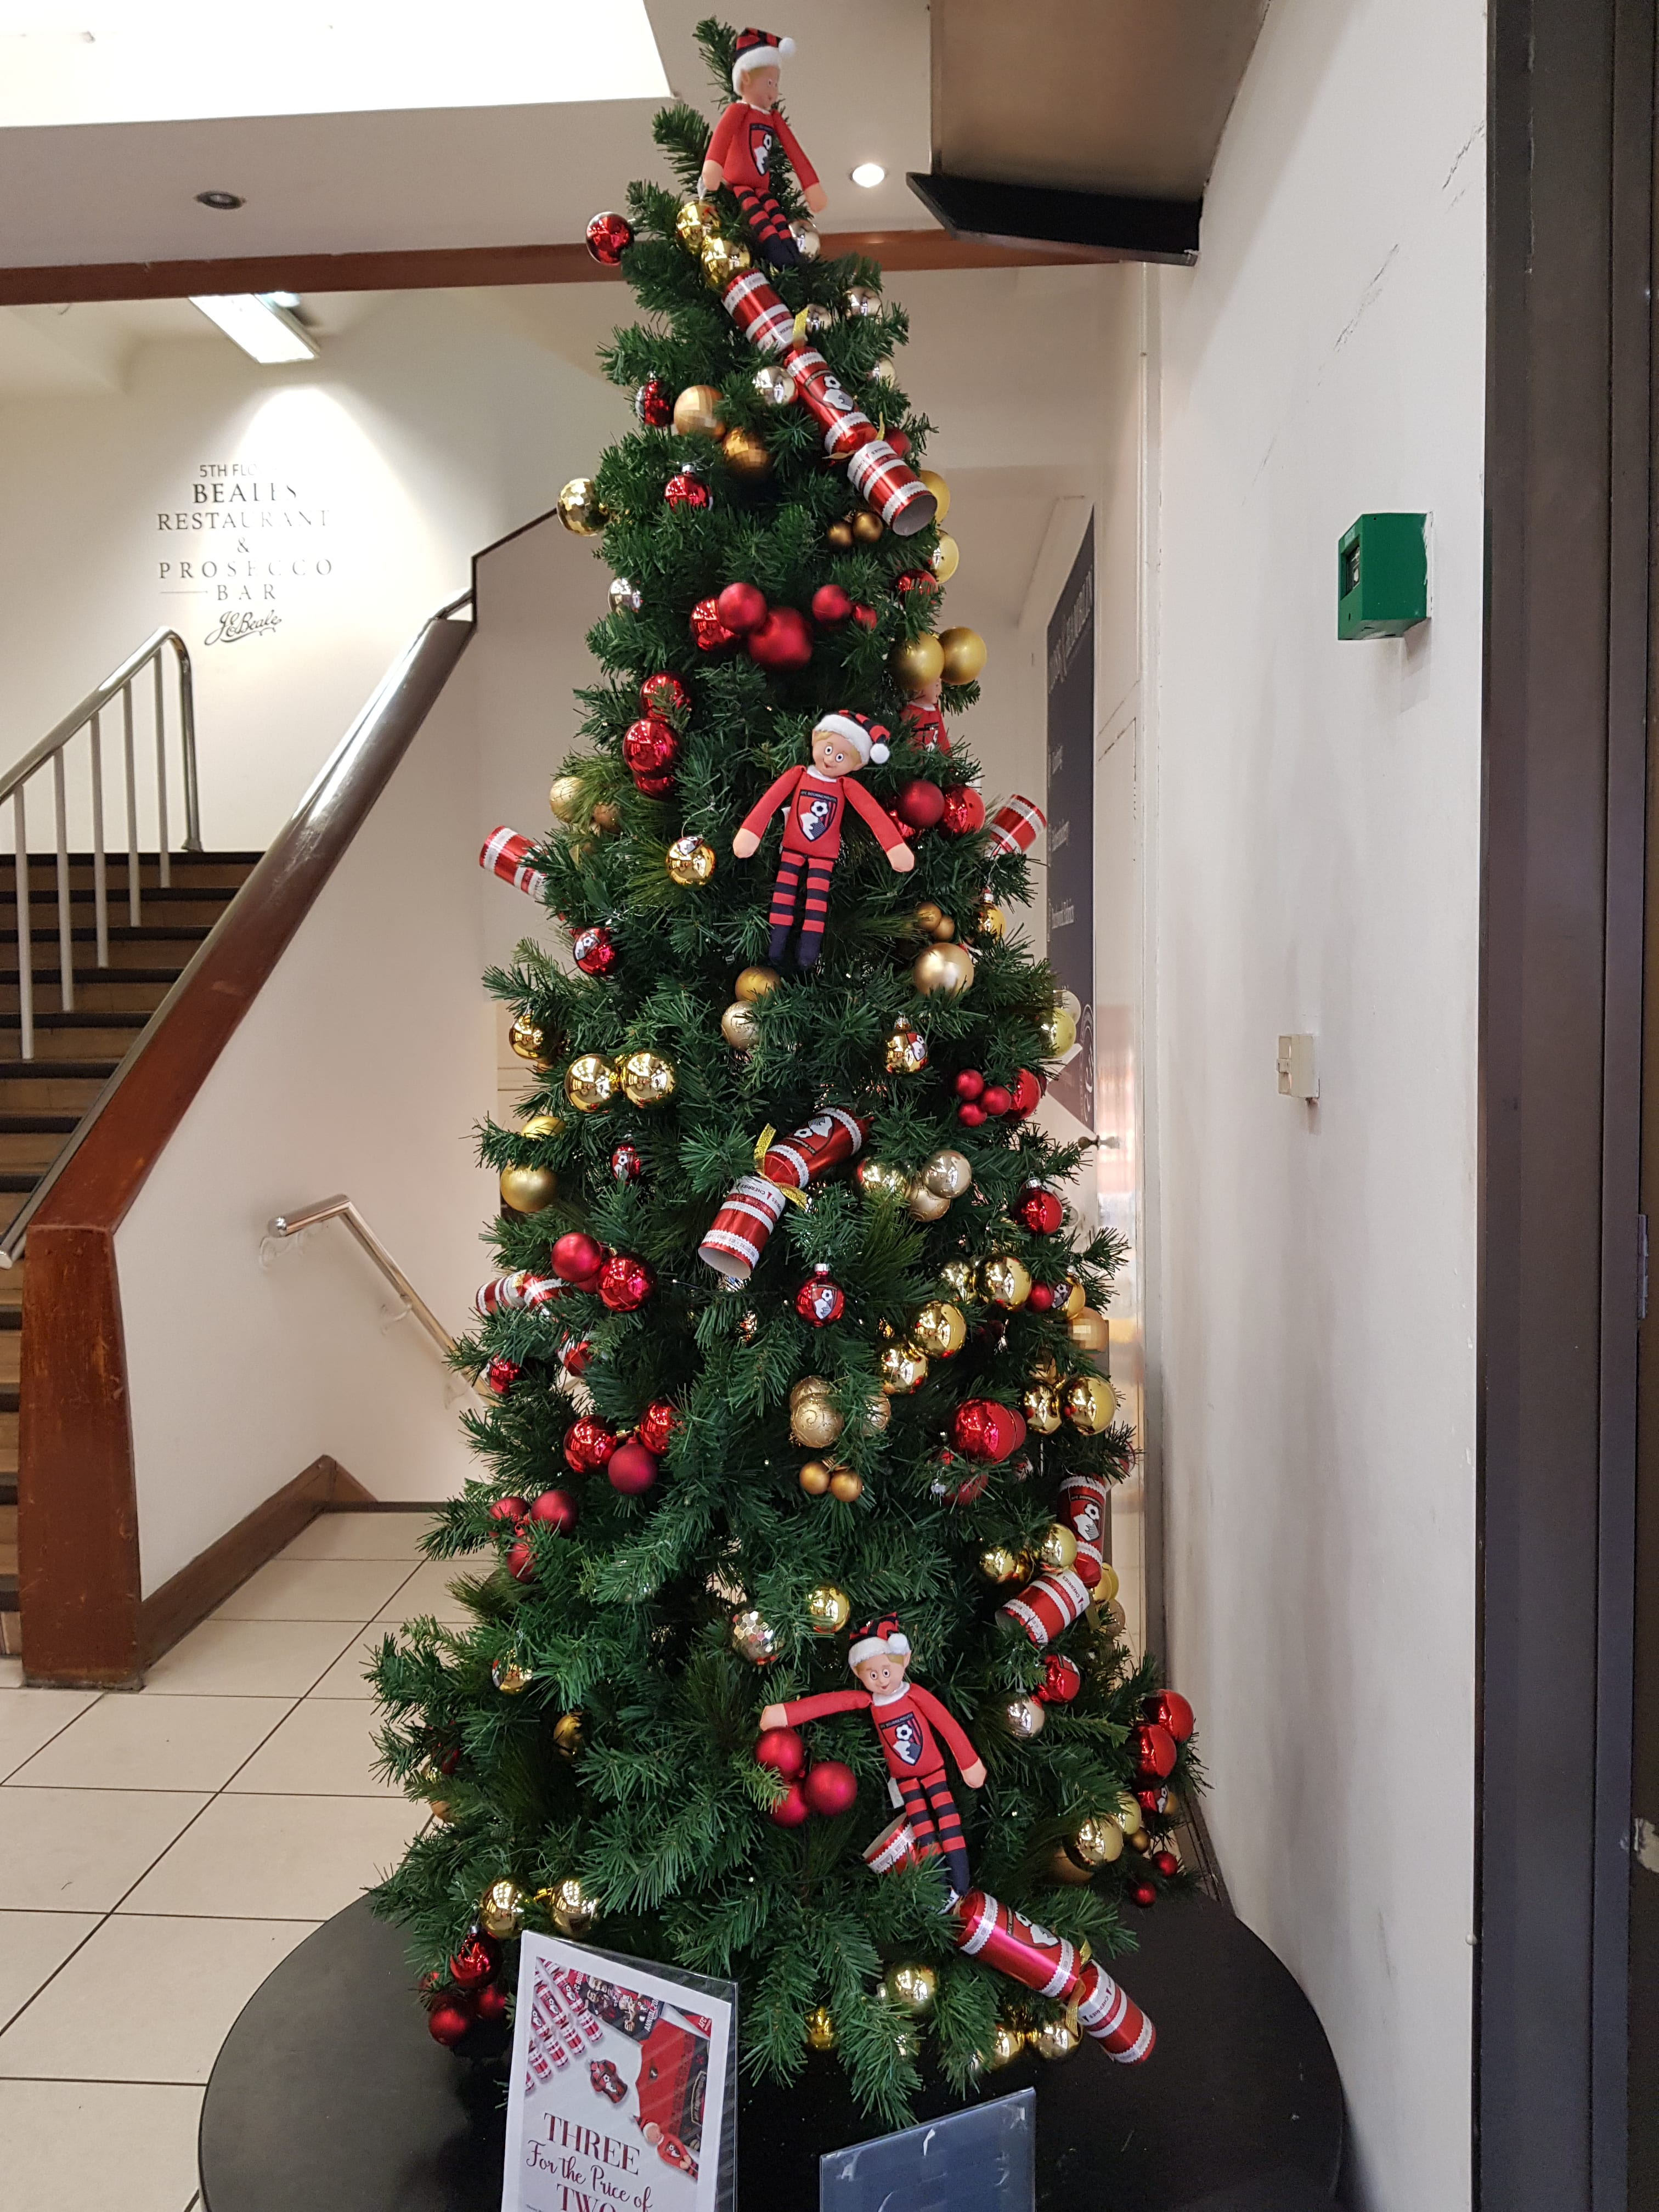 AFC Bournemouths Christmas Tree in Beales